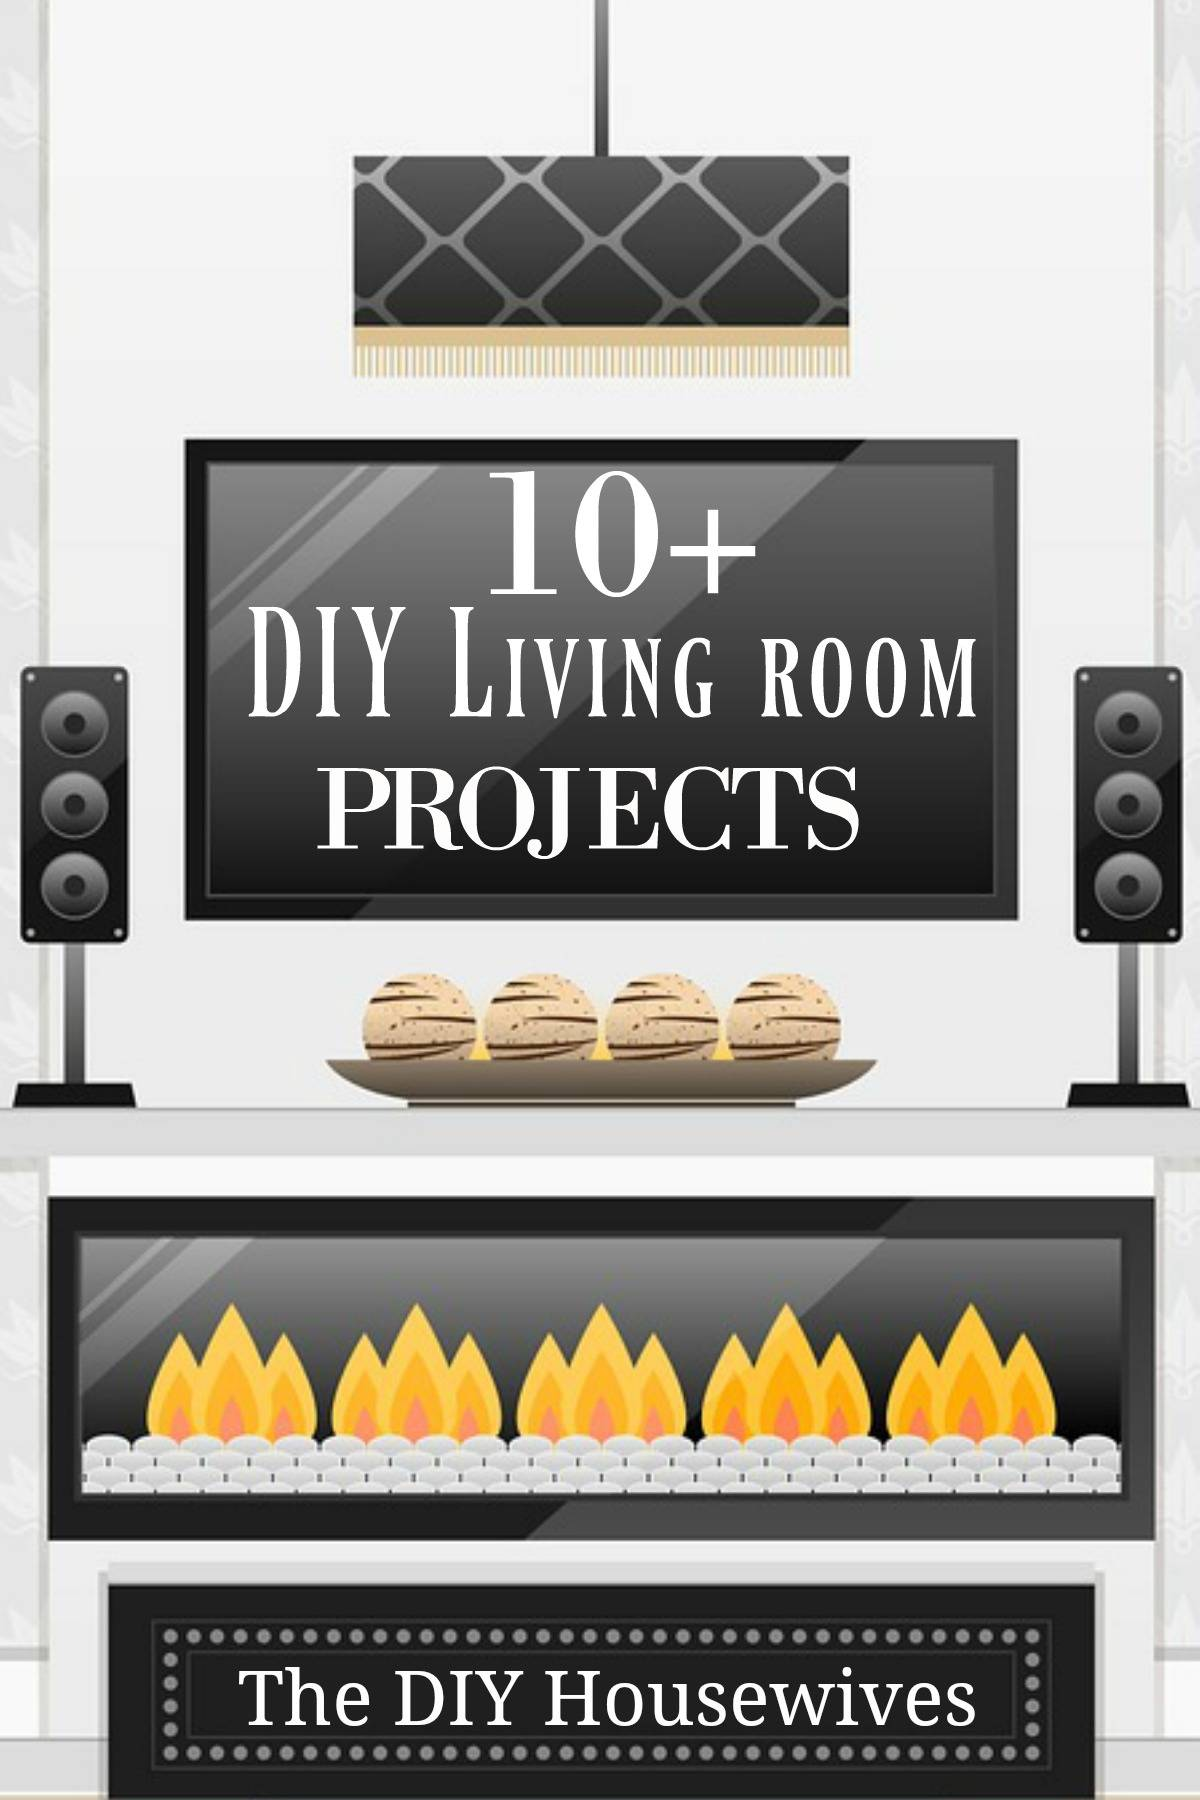 Living room diy projects